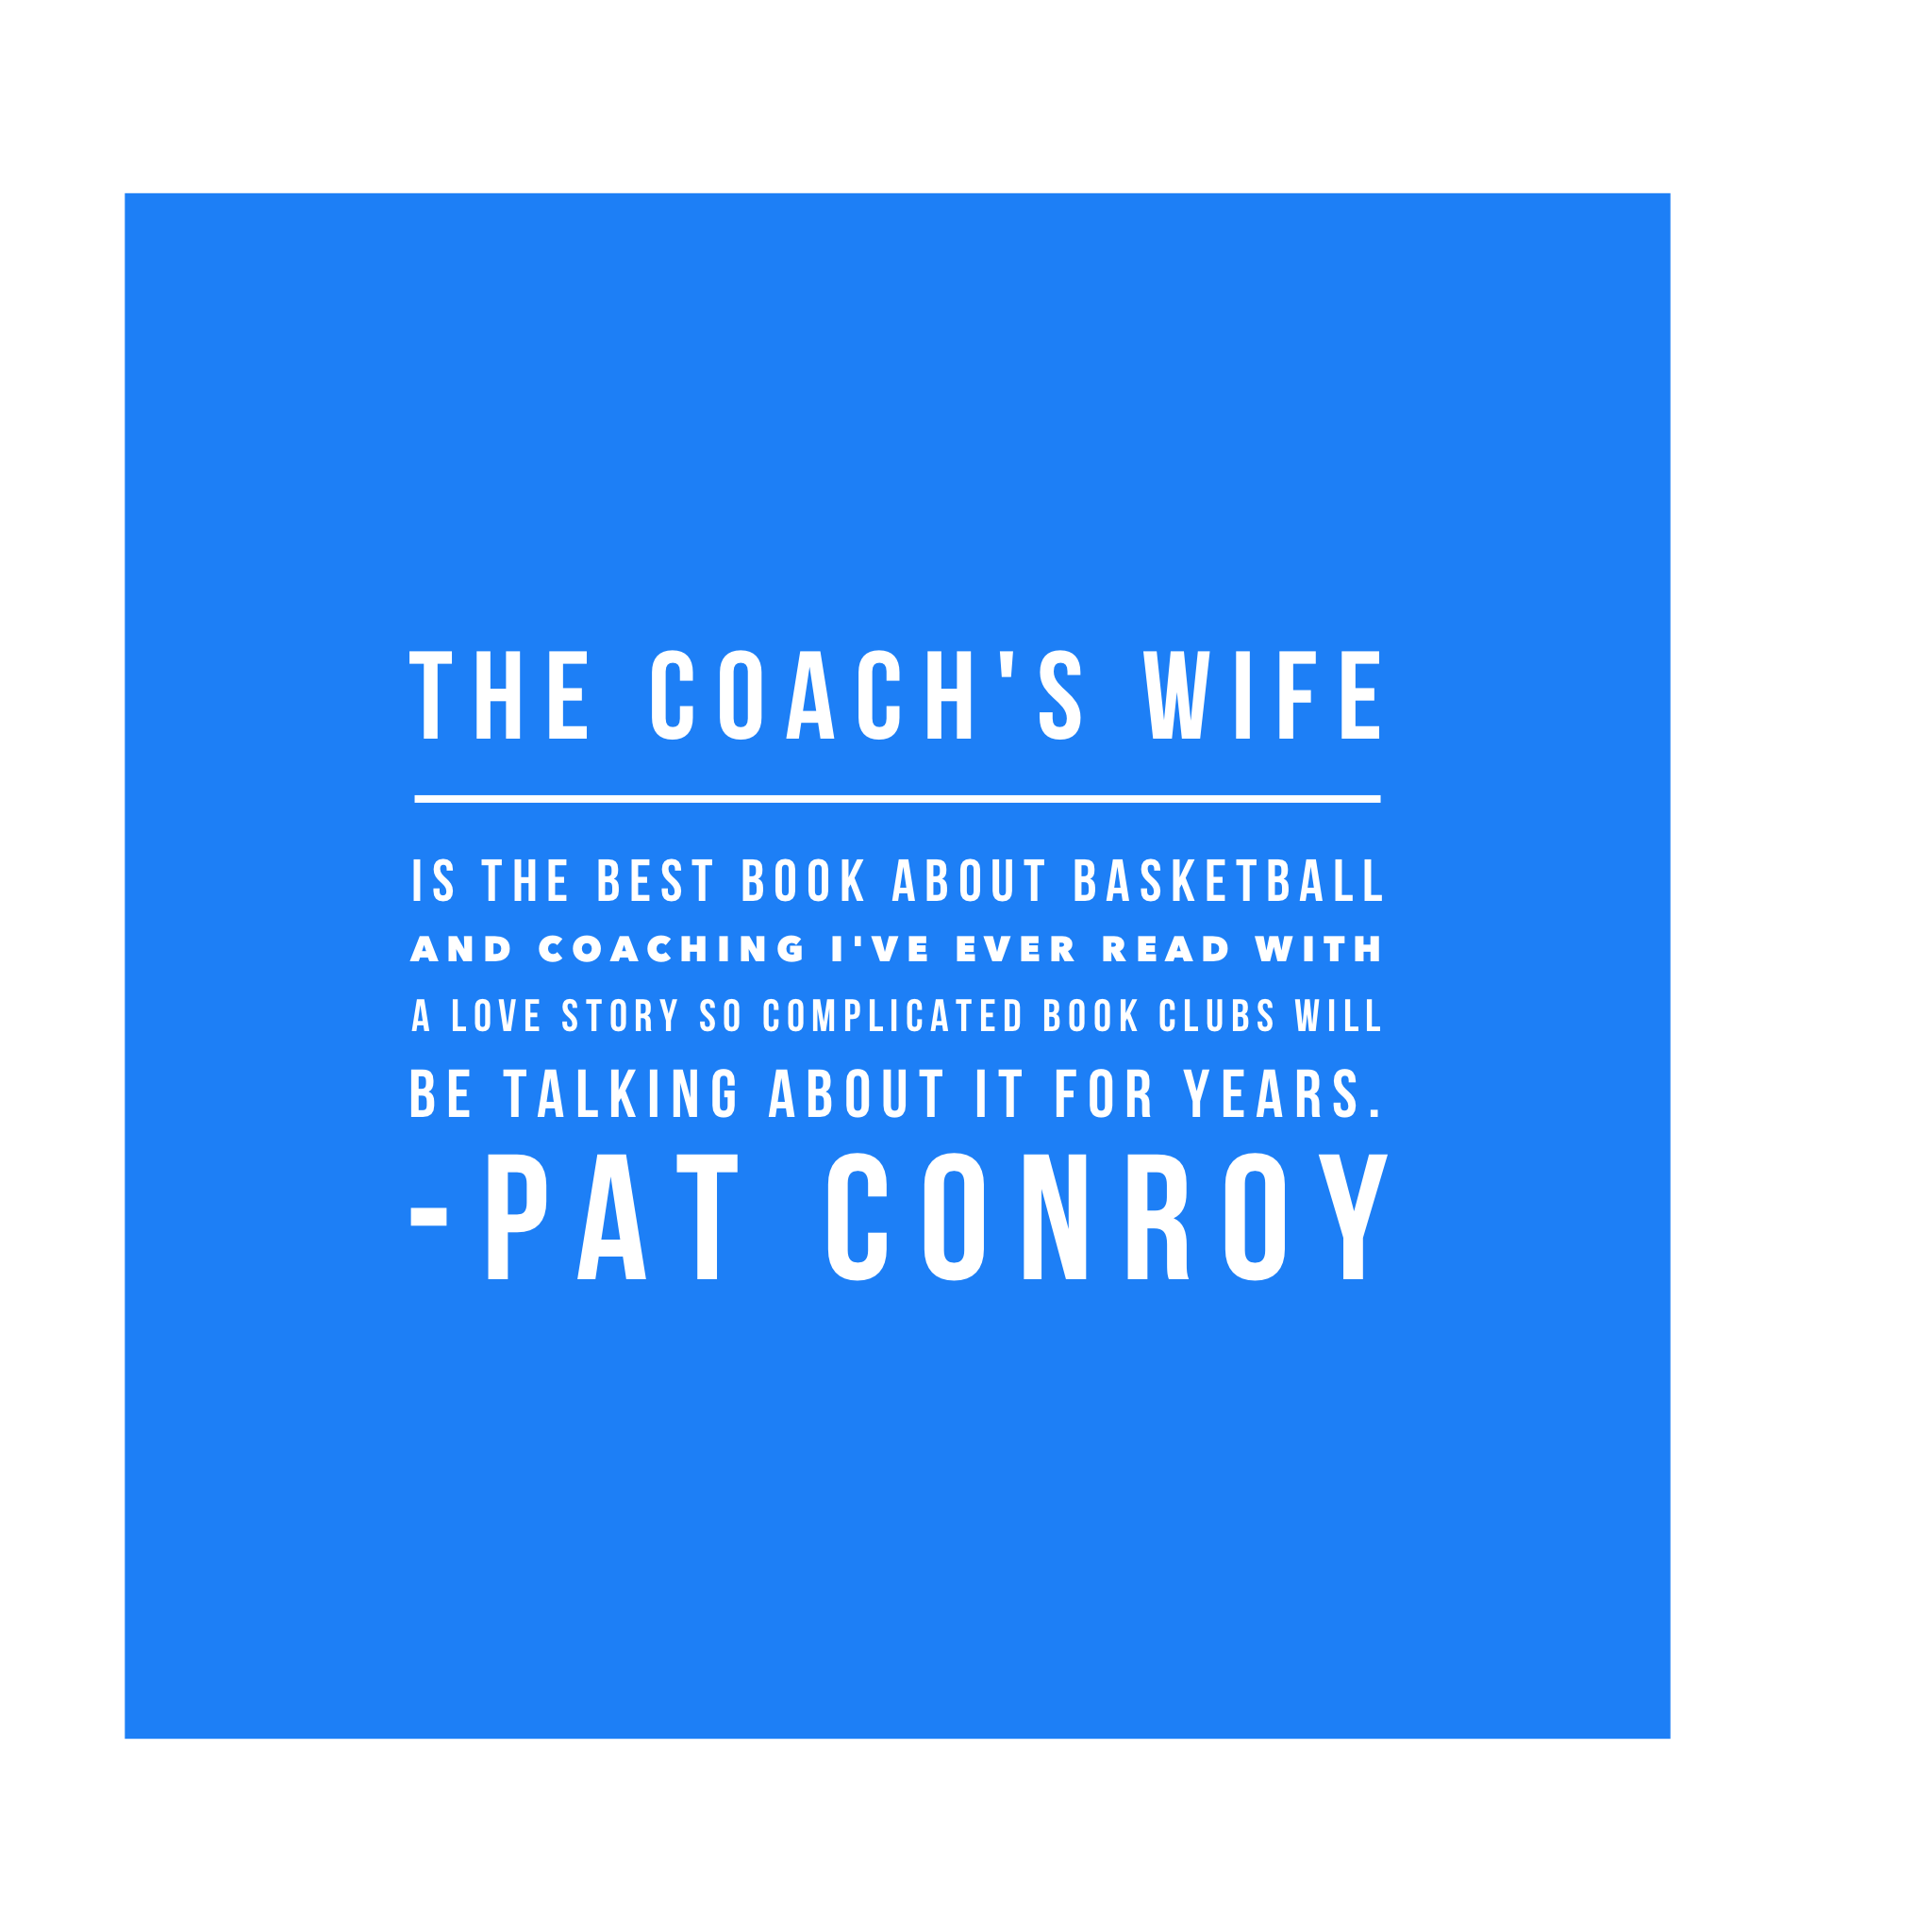 Pat Conroy, William Torgerson, novel, book club, basketball, love story, Indiana, coaching